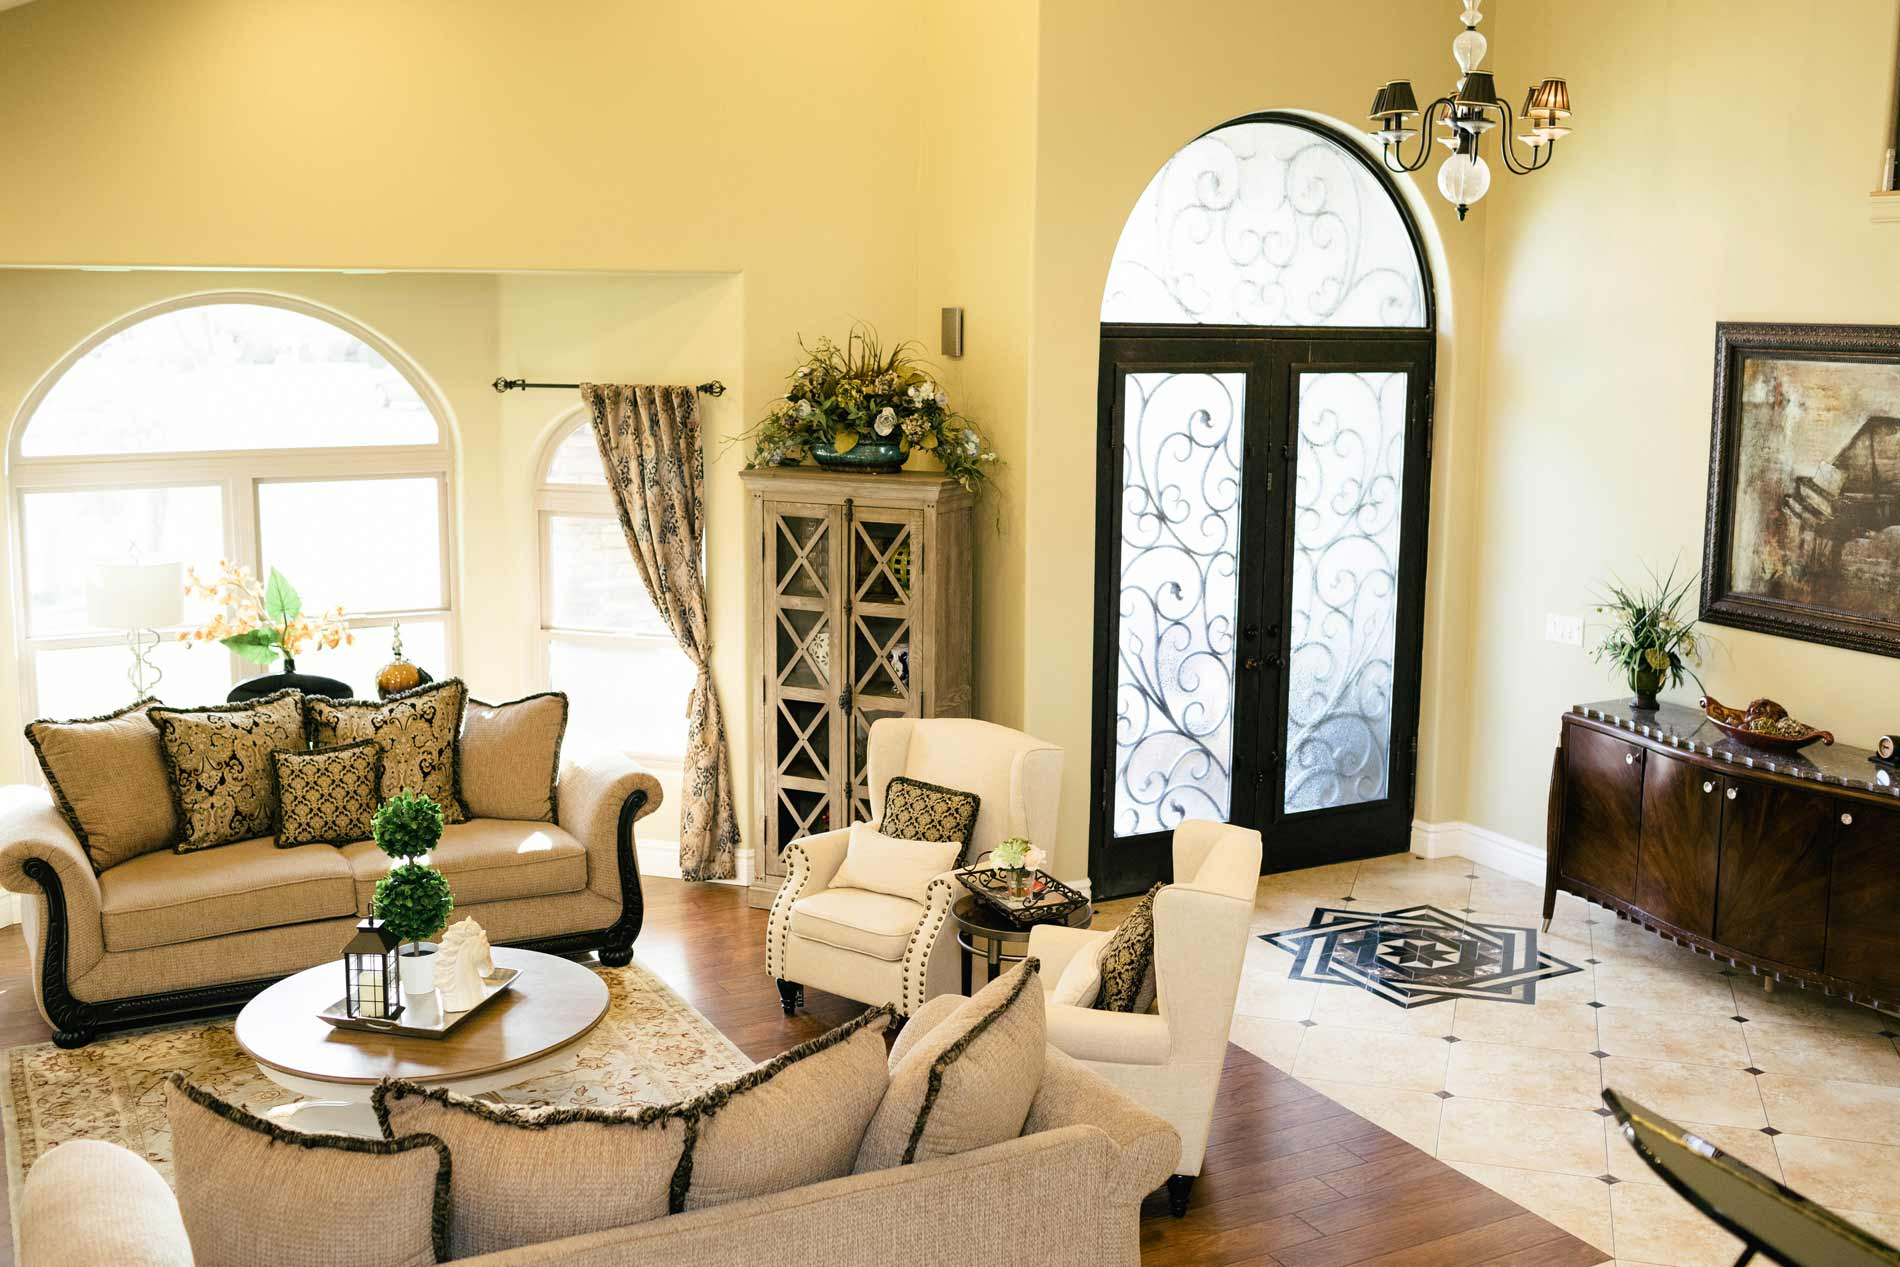 Central Scottsdale Assisted Living LLC Reviews, Ratings | Assisted Living Facilities near 10571 N 96th Place , Scottsdale AZ